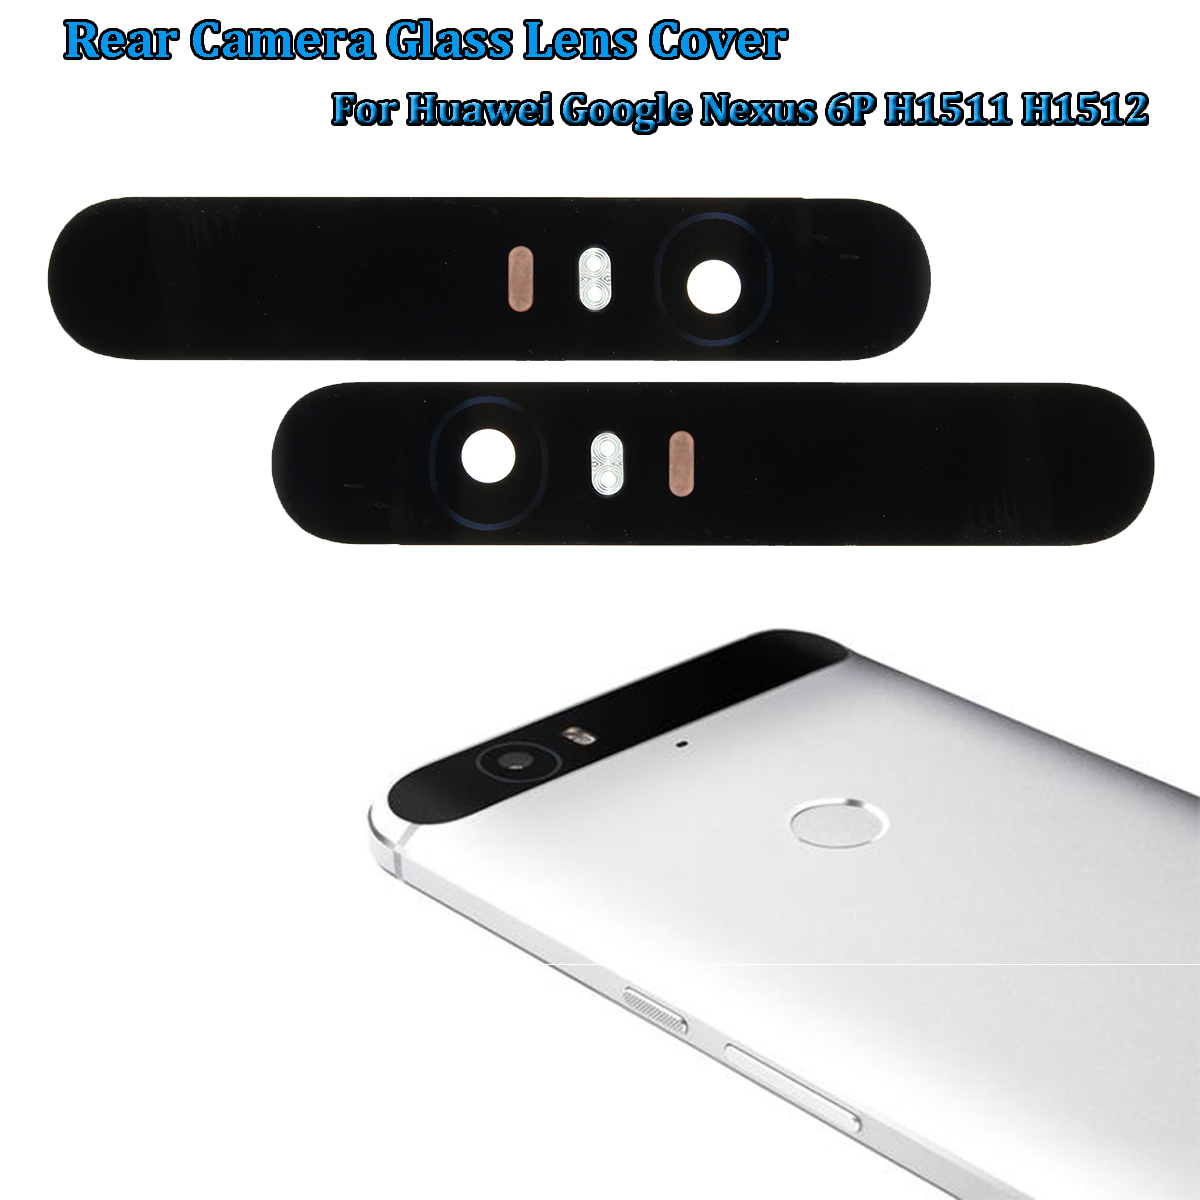 Rear Camera Glass Lens Cover Replacement For Huawei Google Nexus 6P H1511 H1512